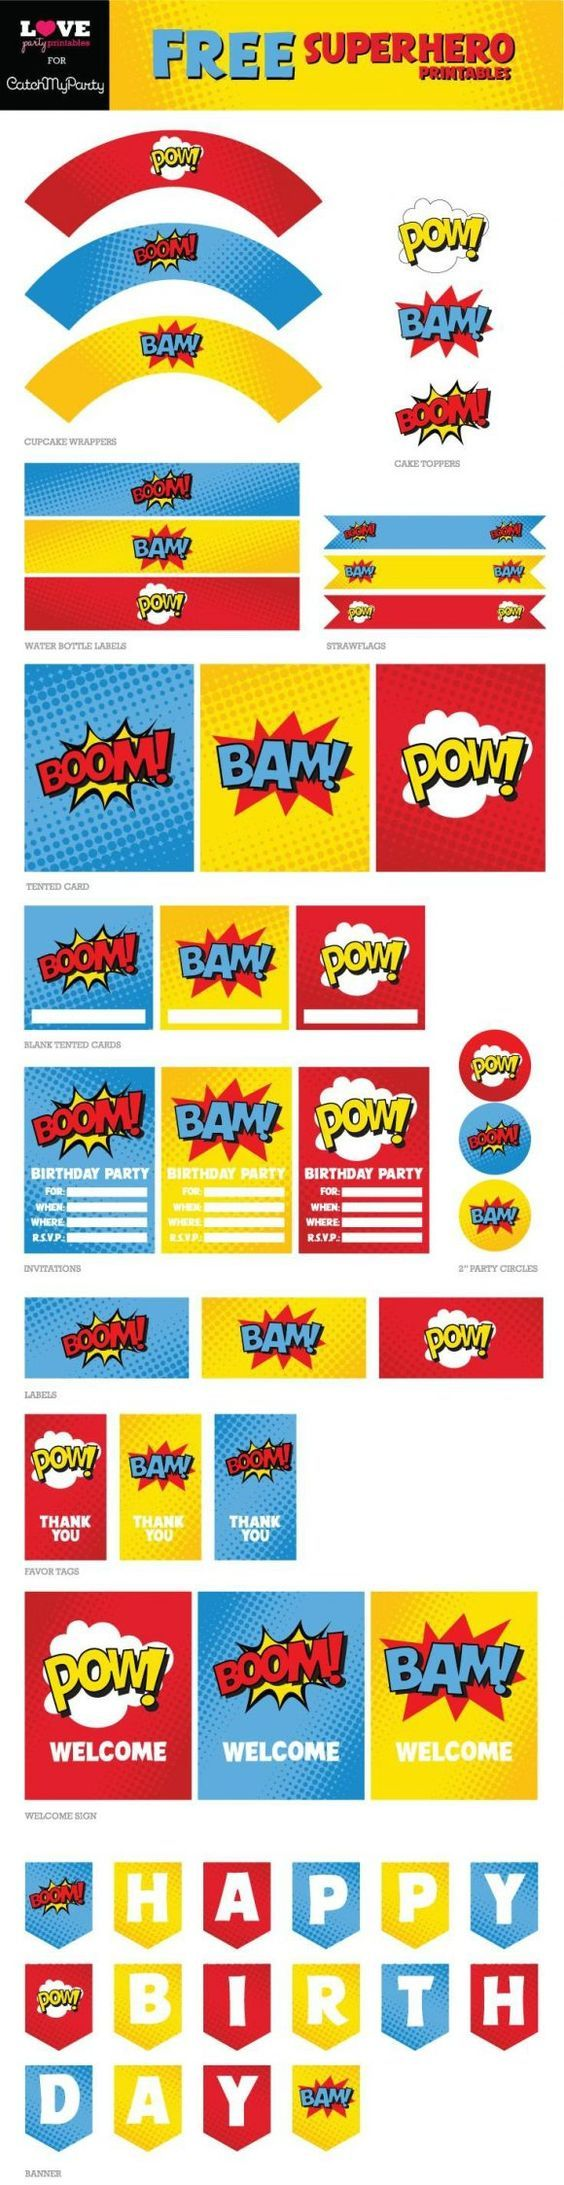 Free Superhero Party Printables Including Happy Birthday Banner